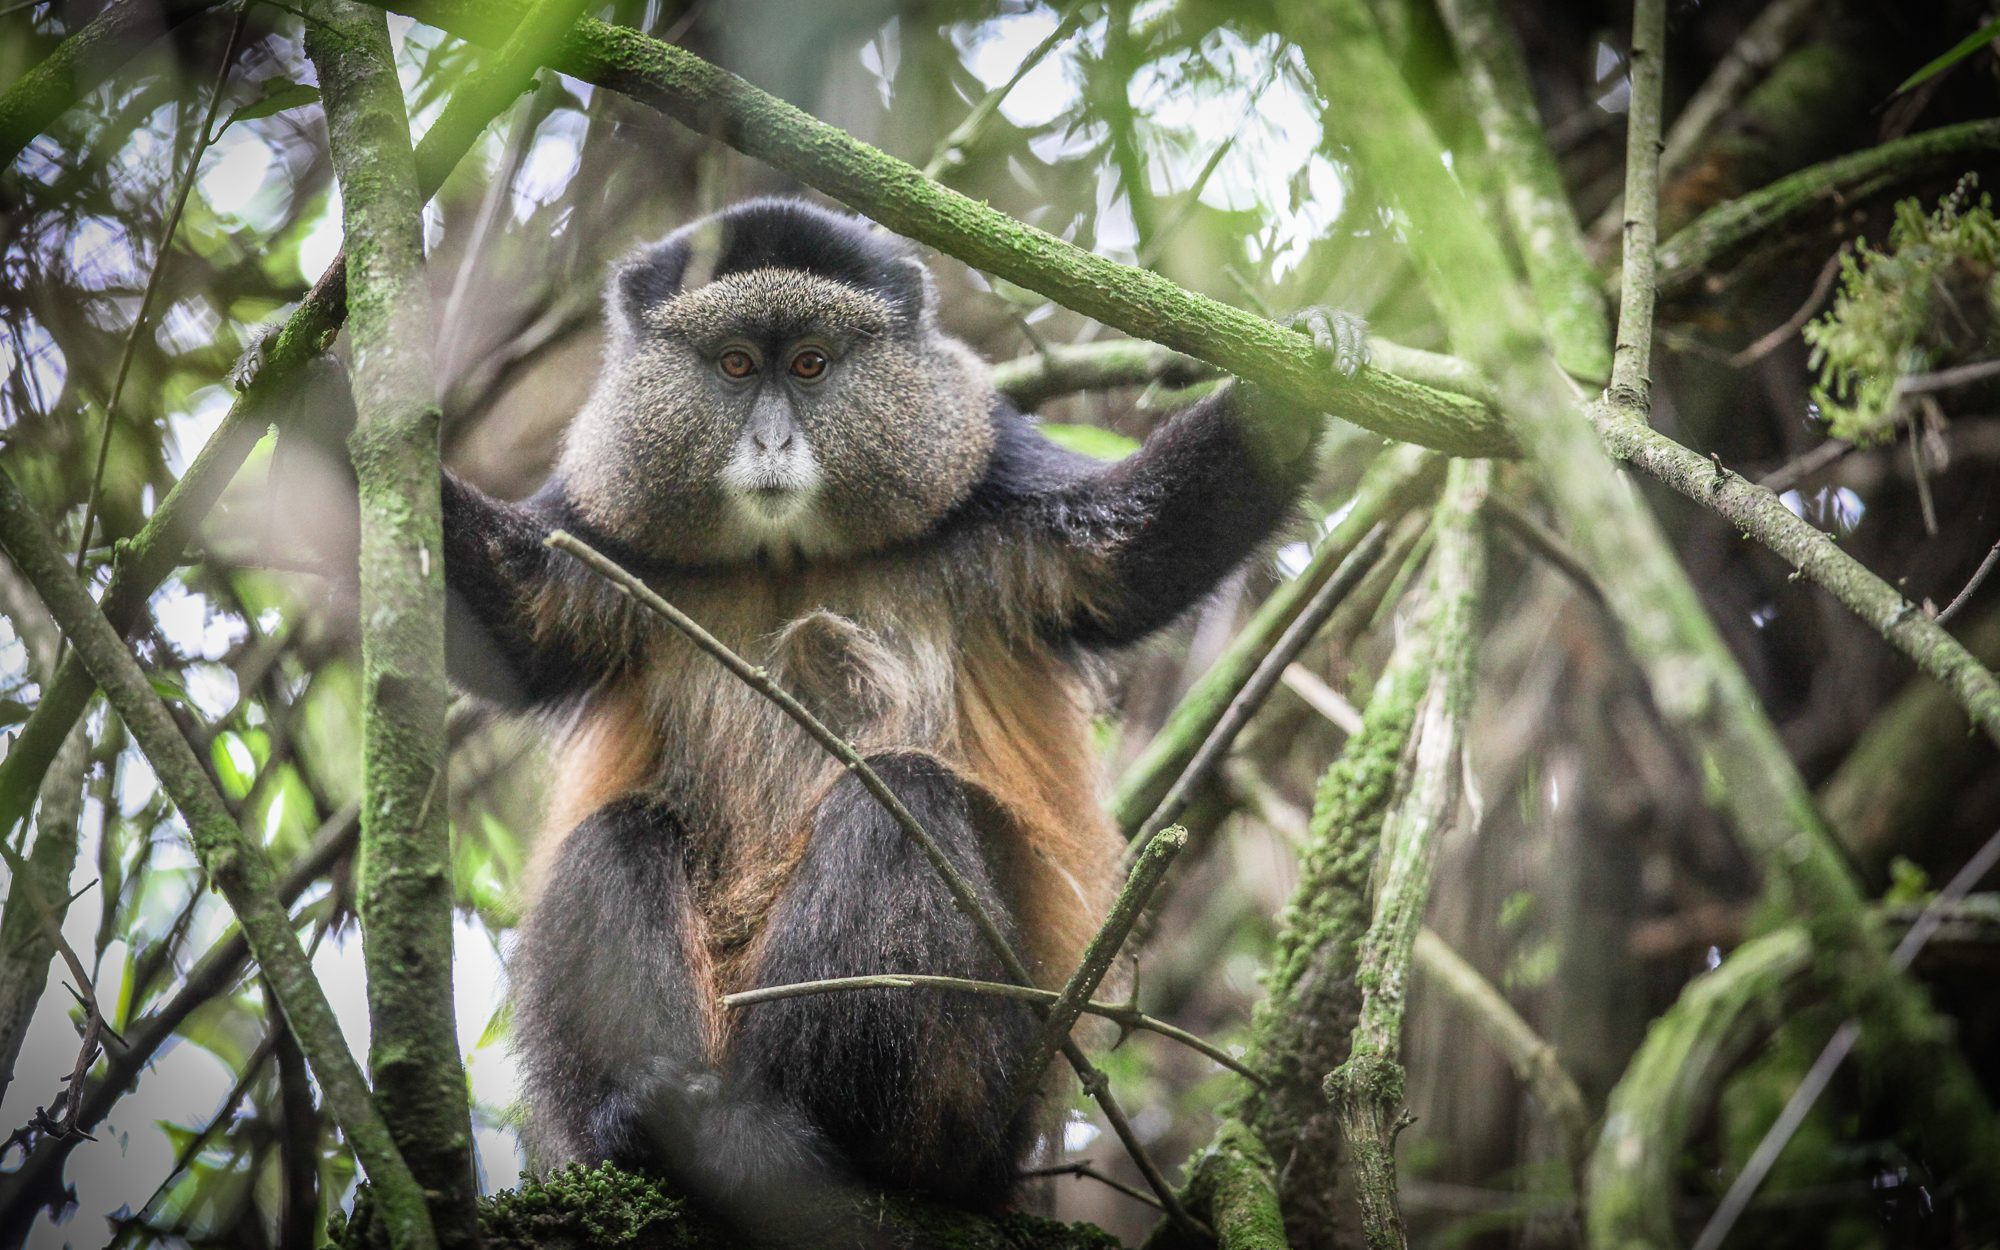 a golden monkey holding onto and peering through bamboo reeds in Mgahinga